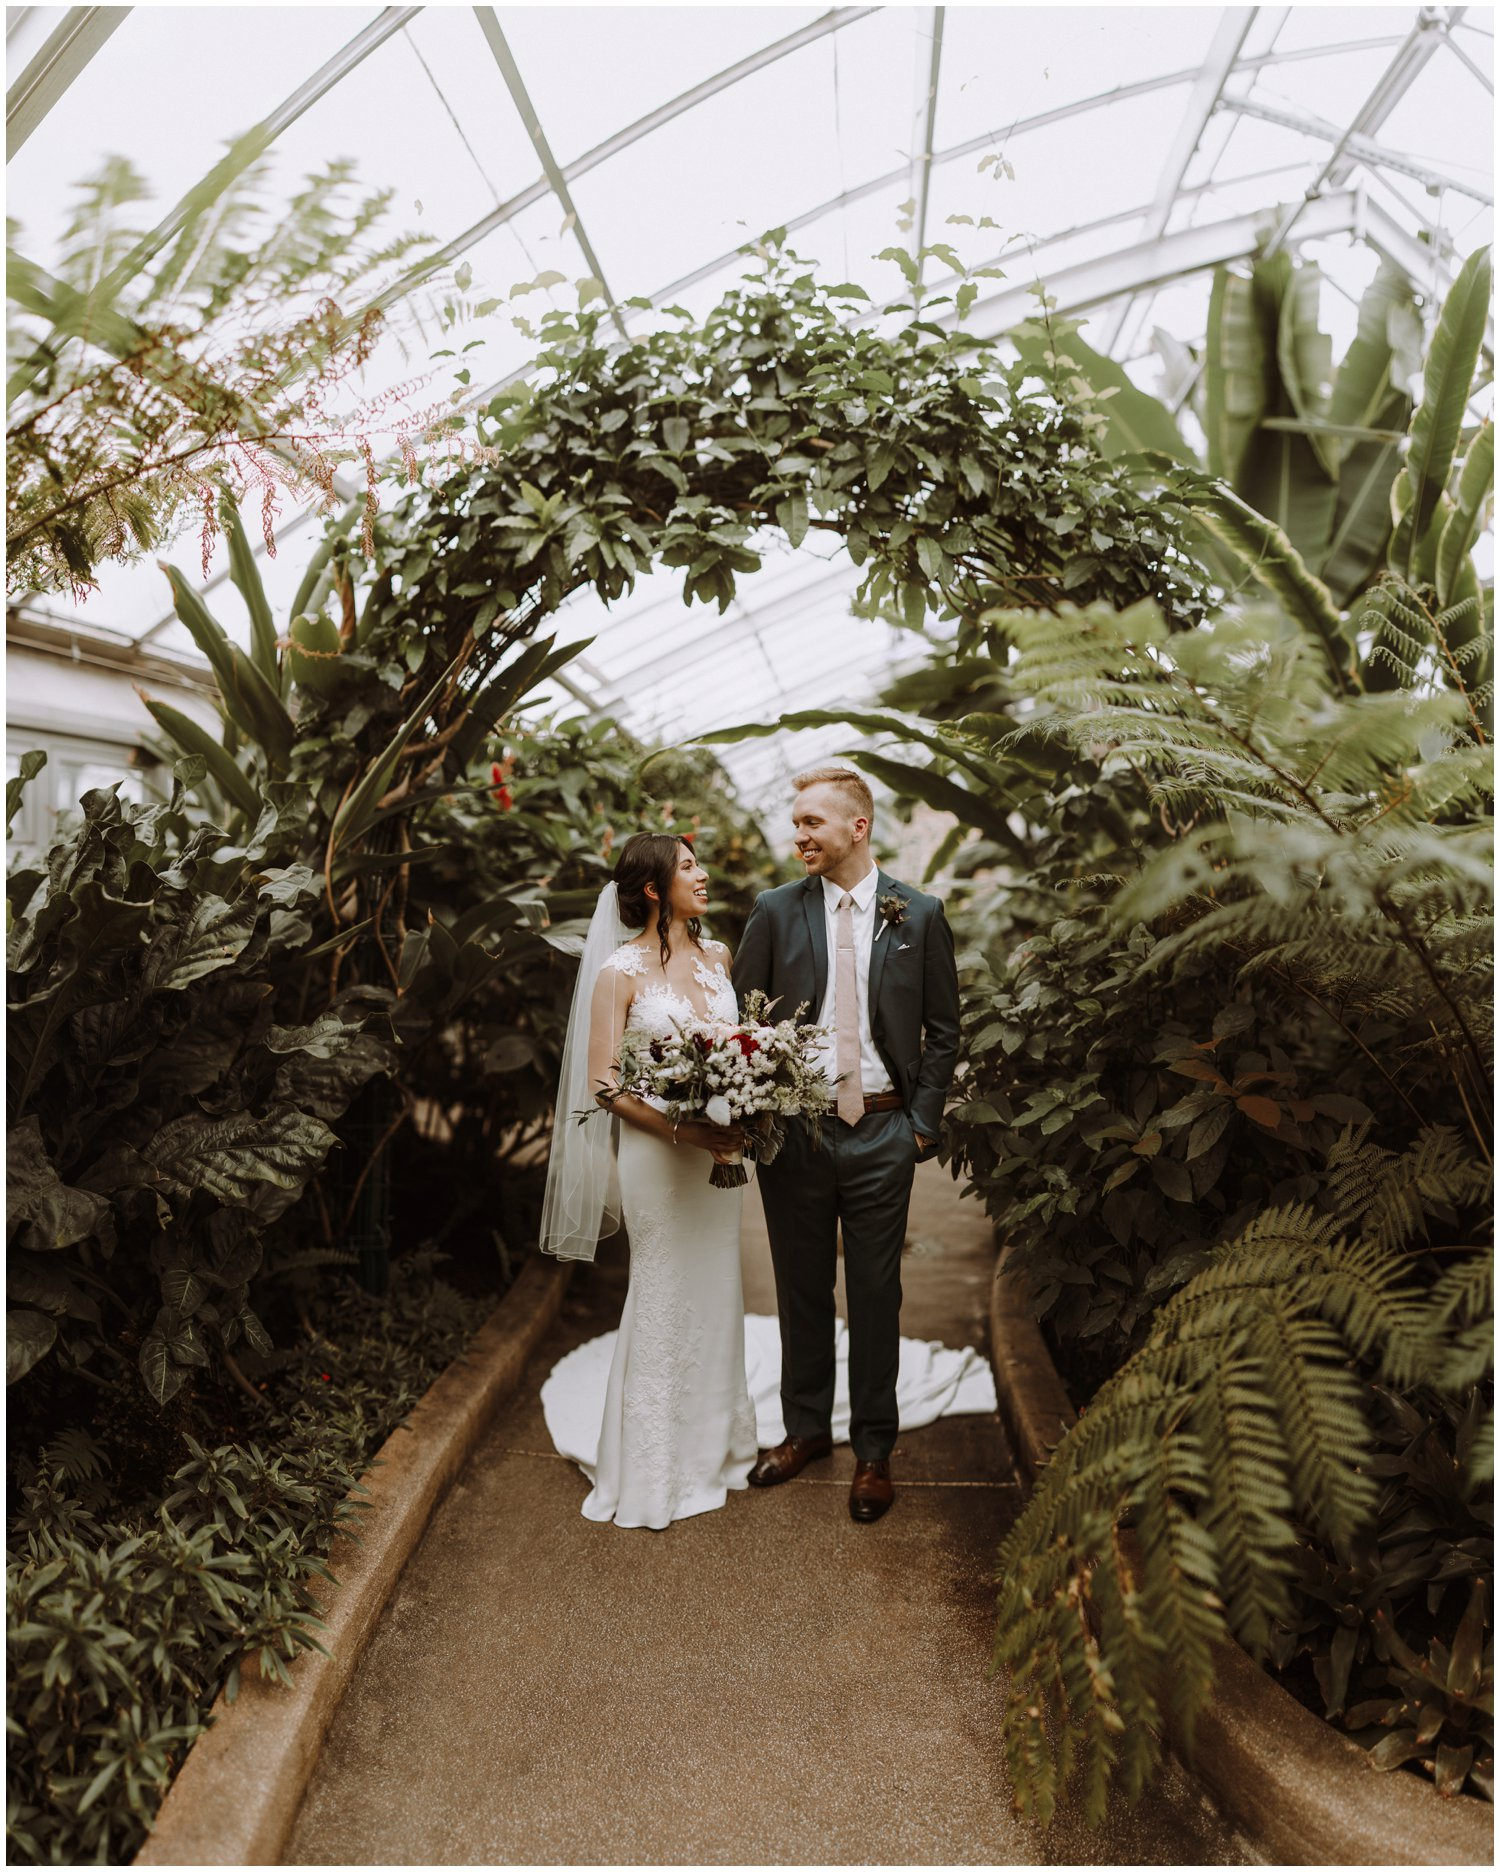 Baltimore wedding photographer | bride and groom greenhouse portraits | greenhouse wedding | Rawlings conservatory wedding